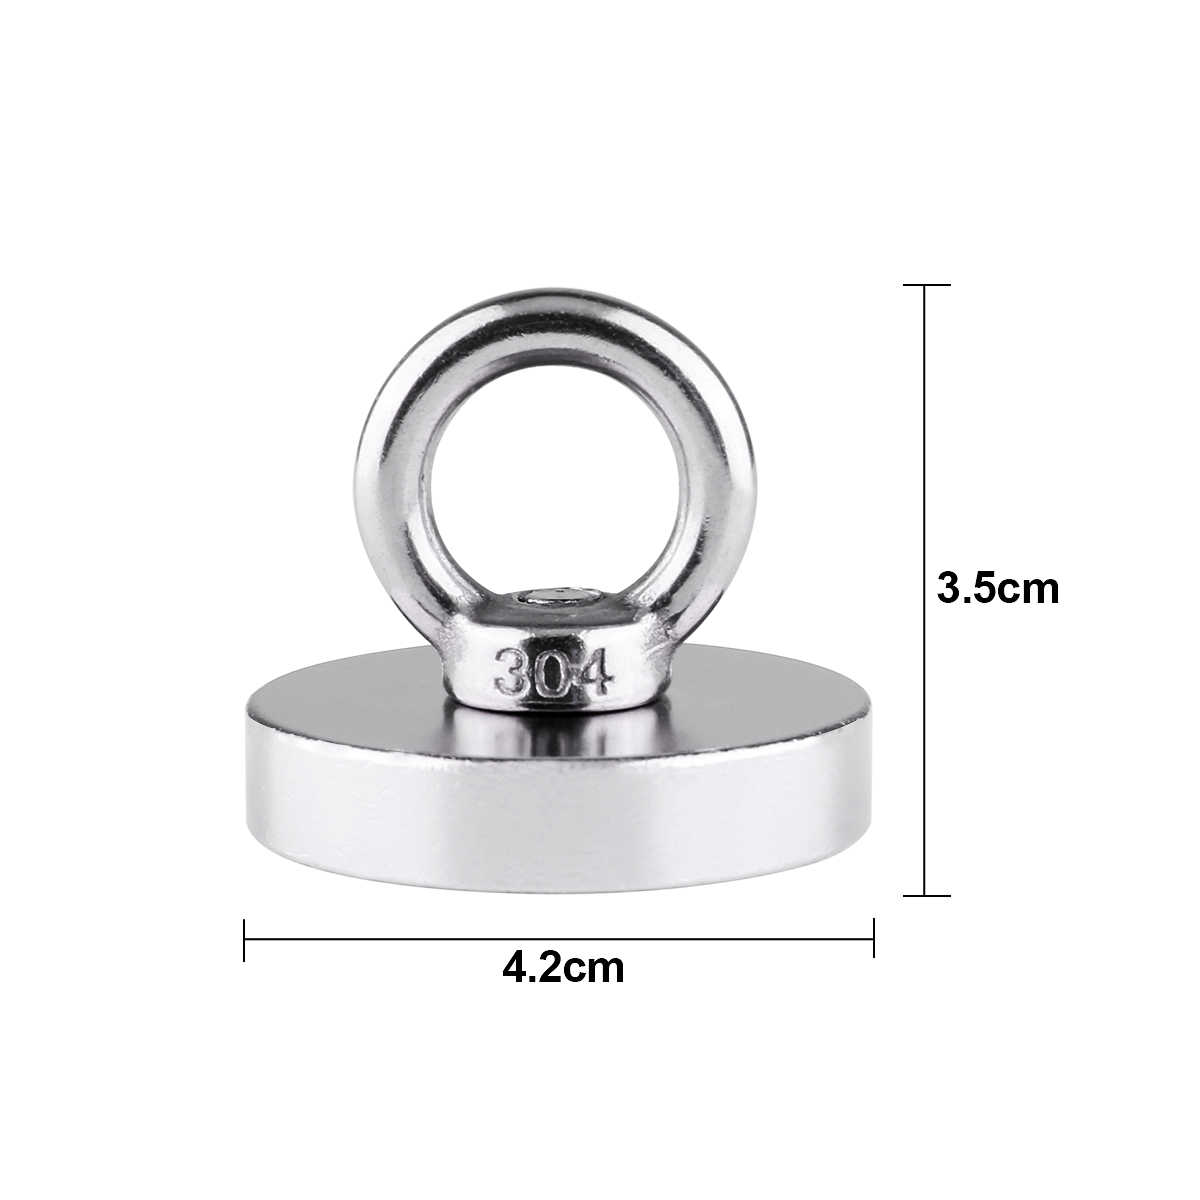 2 Pcs Strong Pulling Force Neodymium Iron Boron Magnet With Circular Rings For Salvage